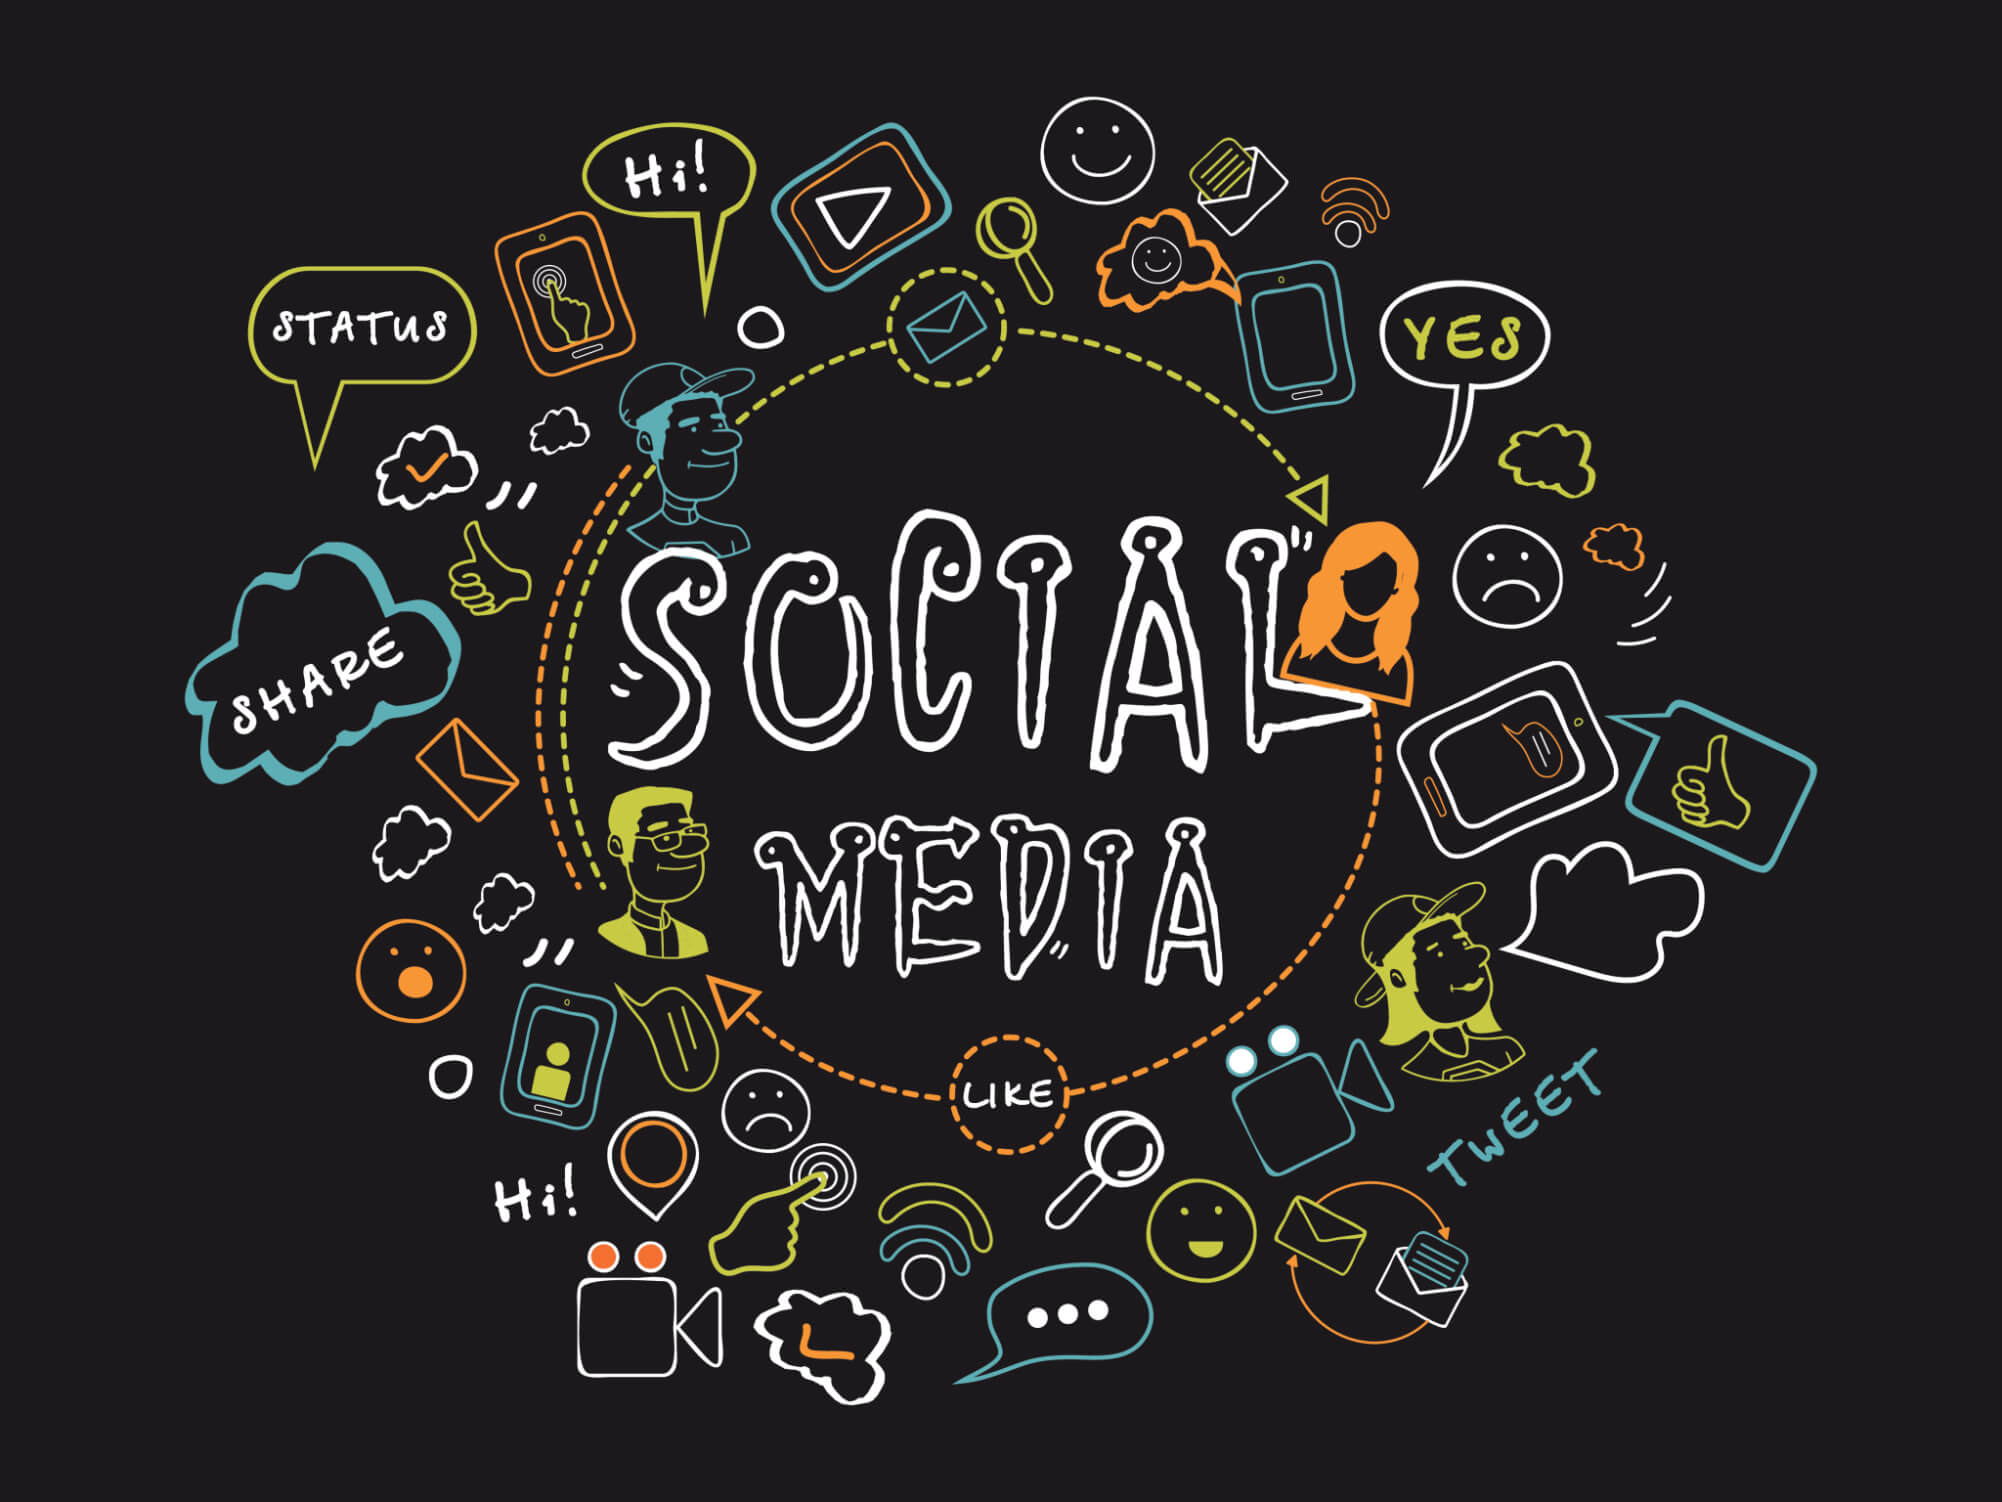 Drive Traffic and Sales with the Power and Pull of Social Media